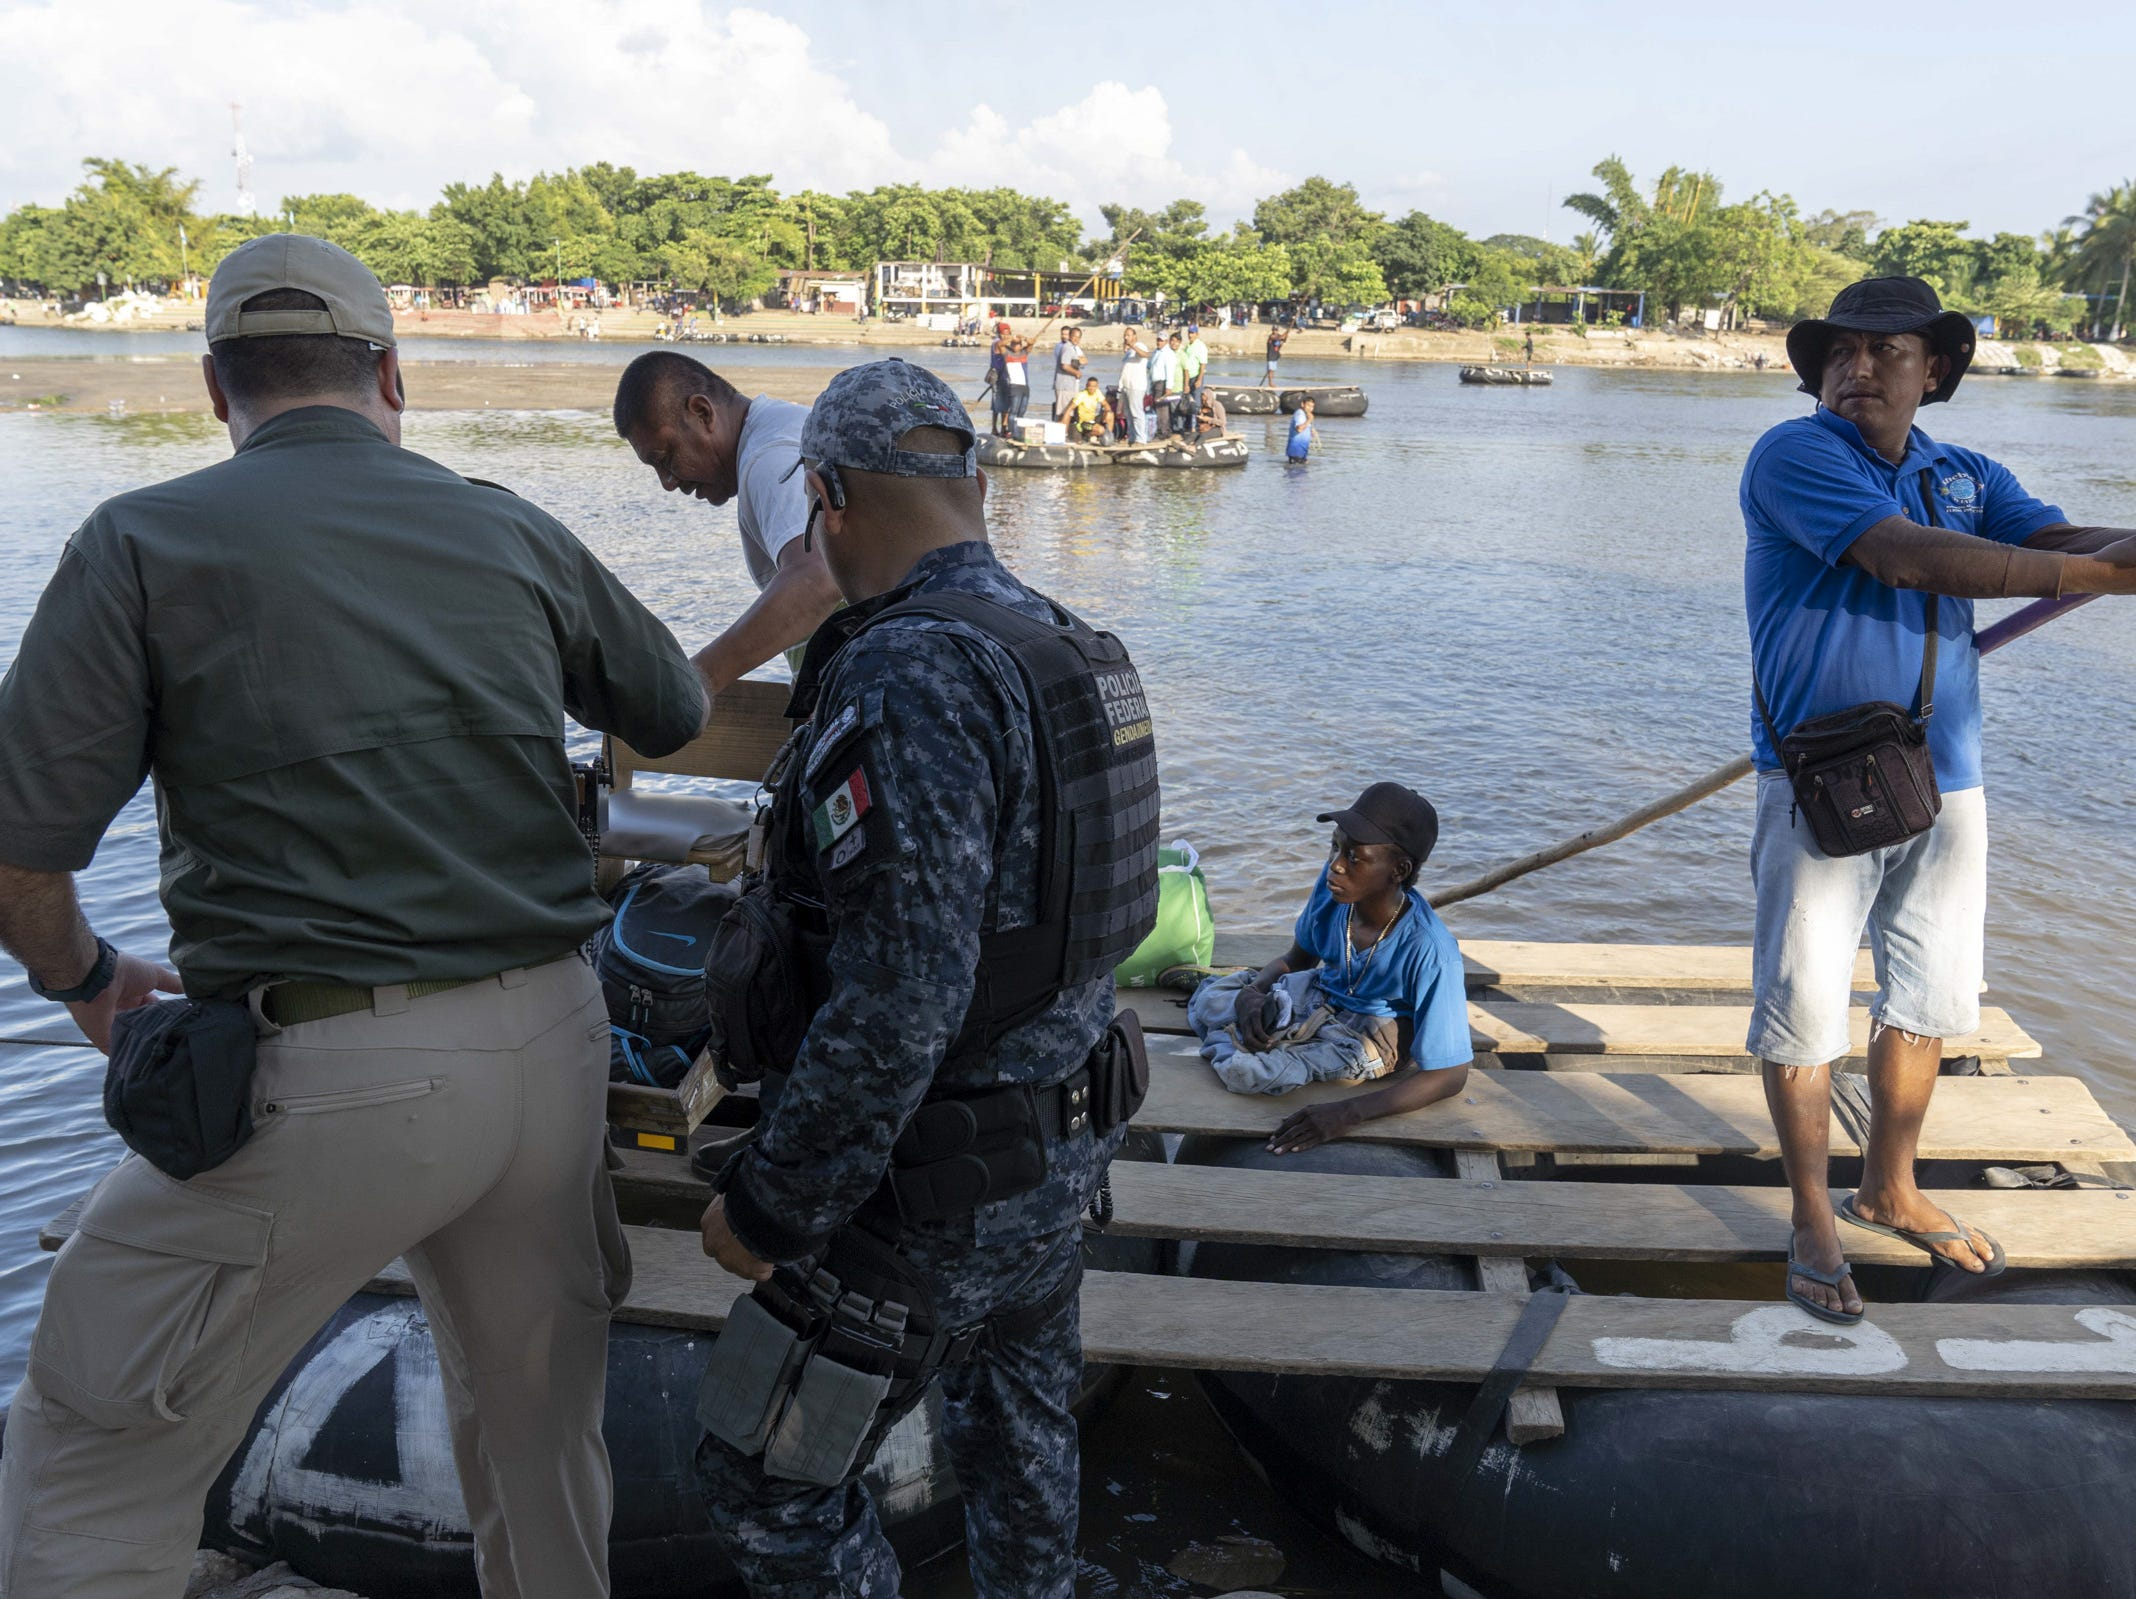 Mexican federal police and immigration officers check the identification of border crossers from Guatemala, who were crossing in a raft at Cuidad Hidalgo, Mexico.